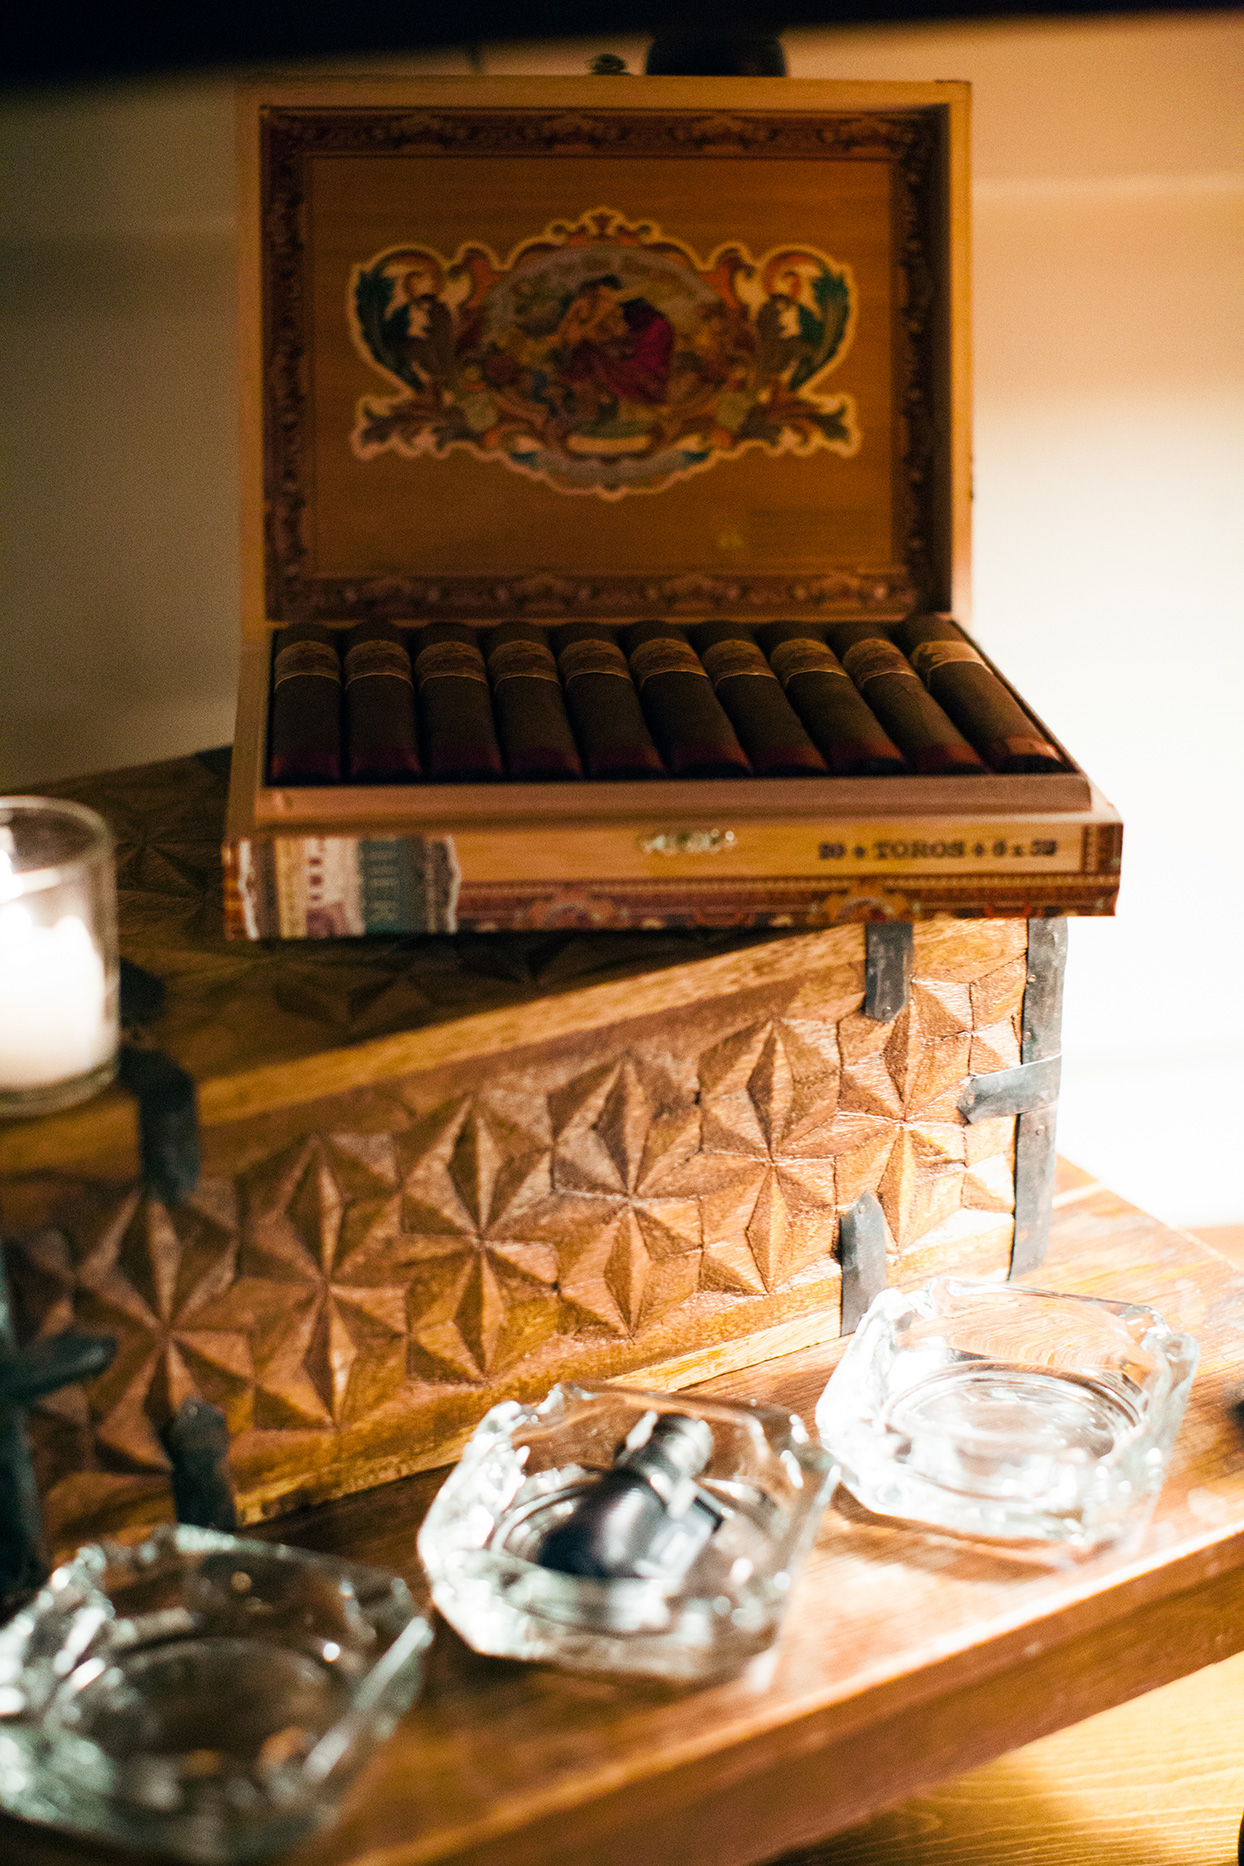 ornate cigar box on wooden table at welcome party